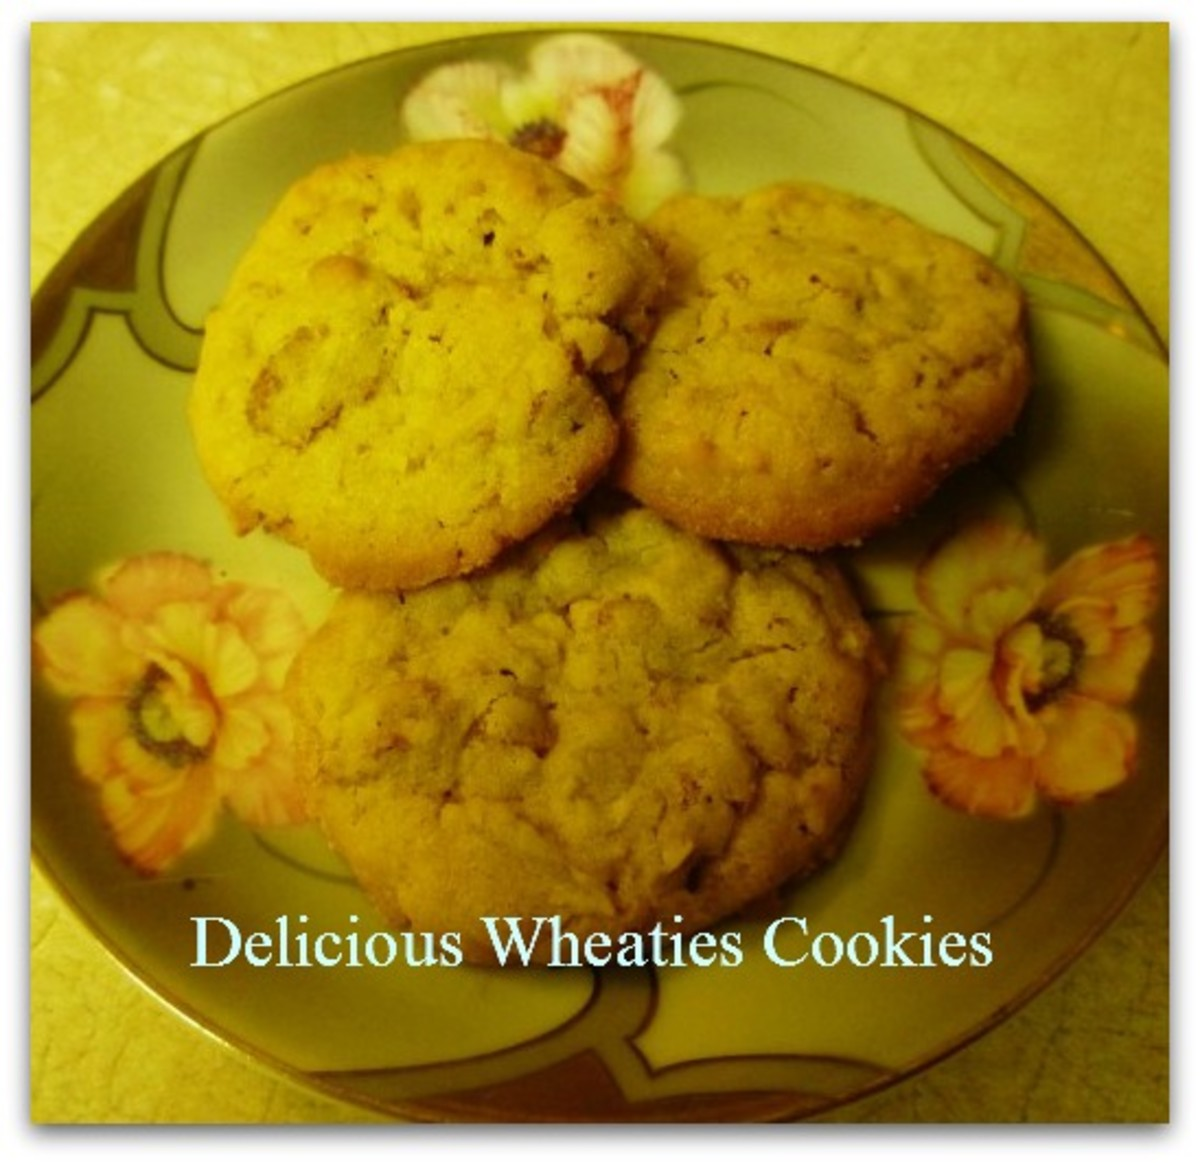 Wheaties Cookie Recipe: Easy to Make Homemade Cookies with Step by Step Photos